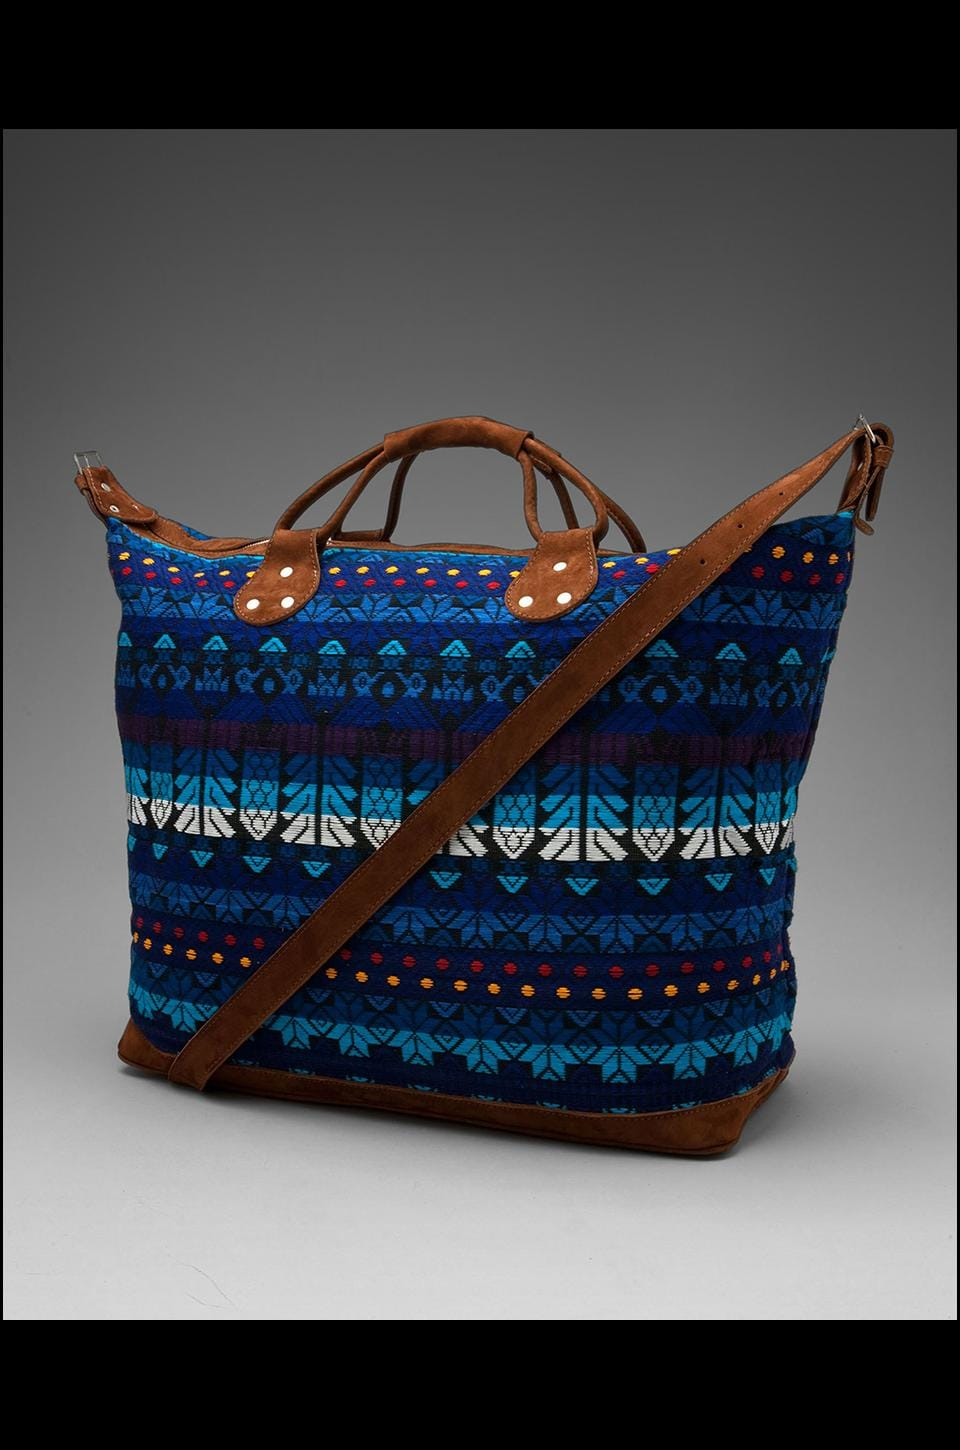 STELA 9 Sunday Bag in Blue Bird